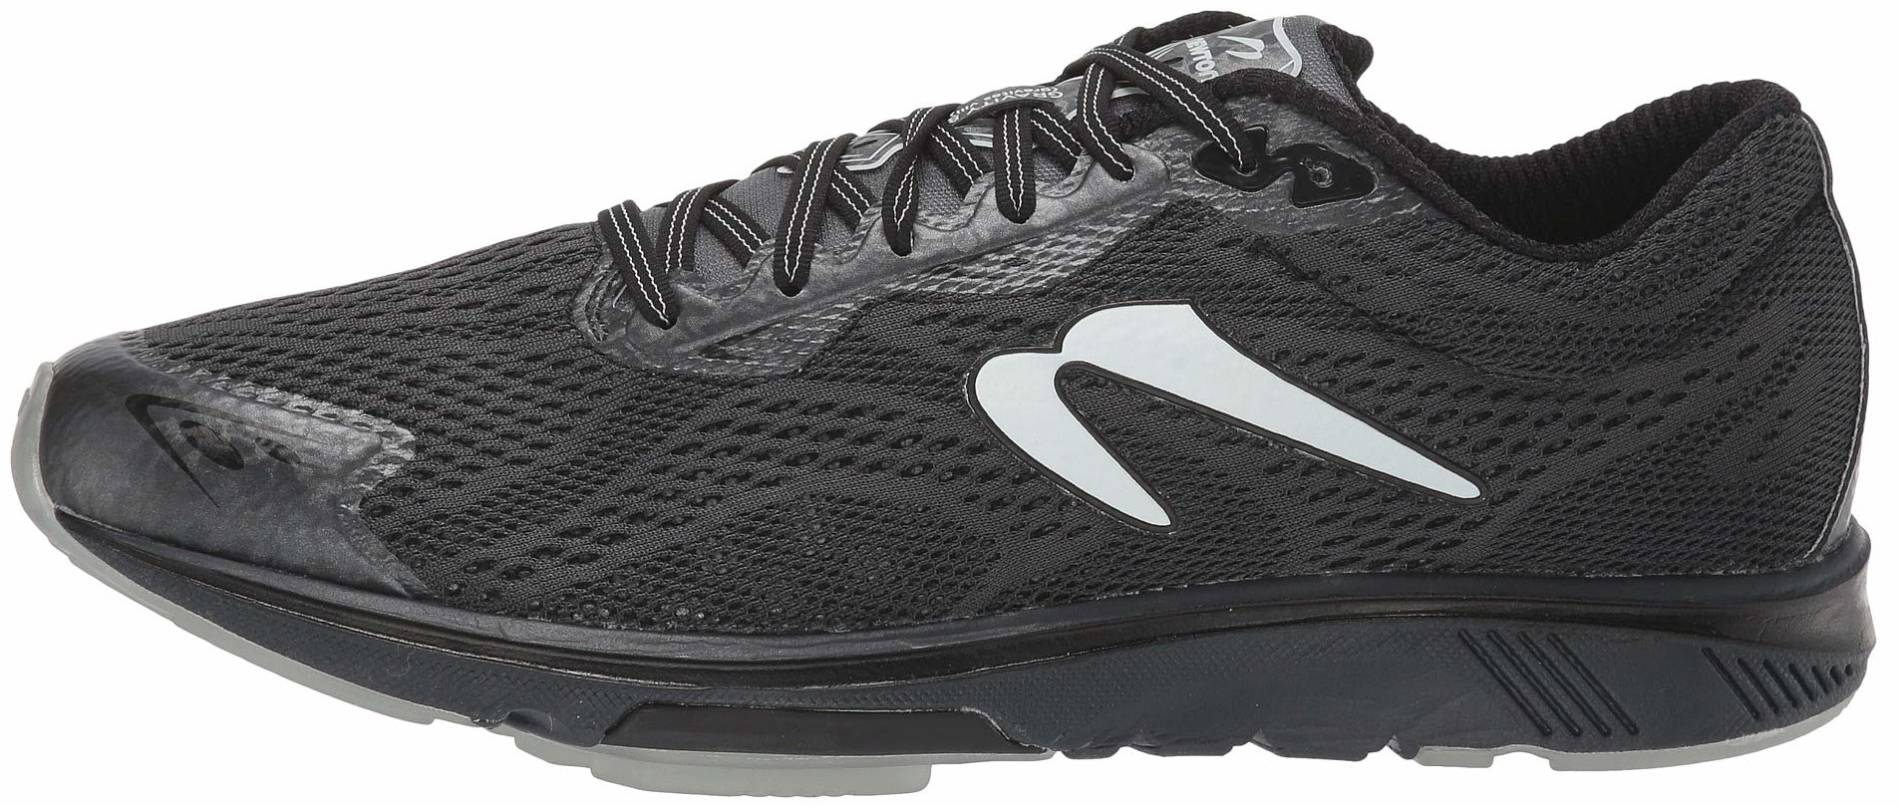 Save 31% on Newton Running Shoes (37